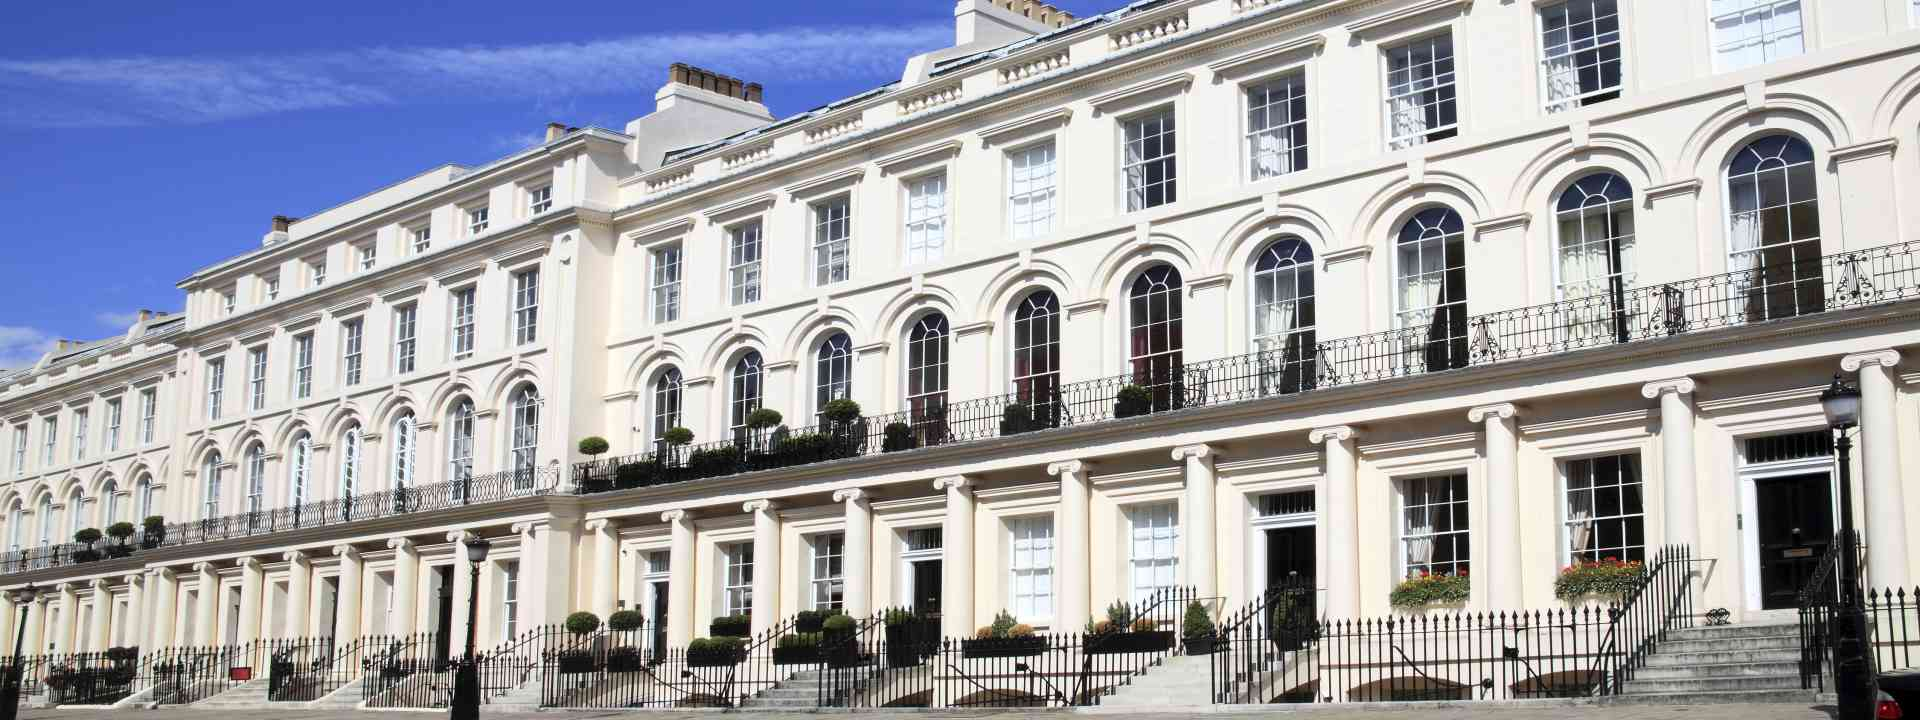 Luxurious-townhouse-apartment-Chelsea-and-Belgravia-London